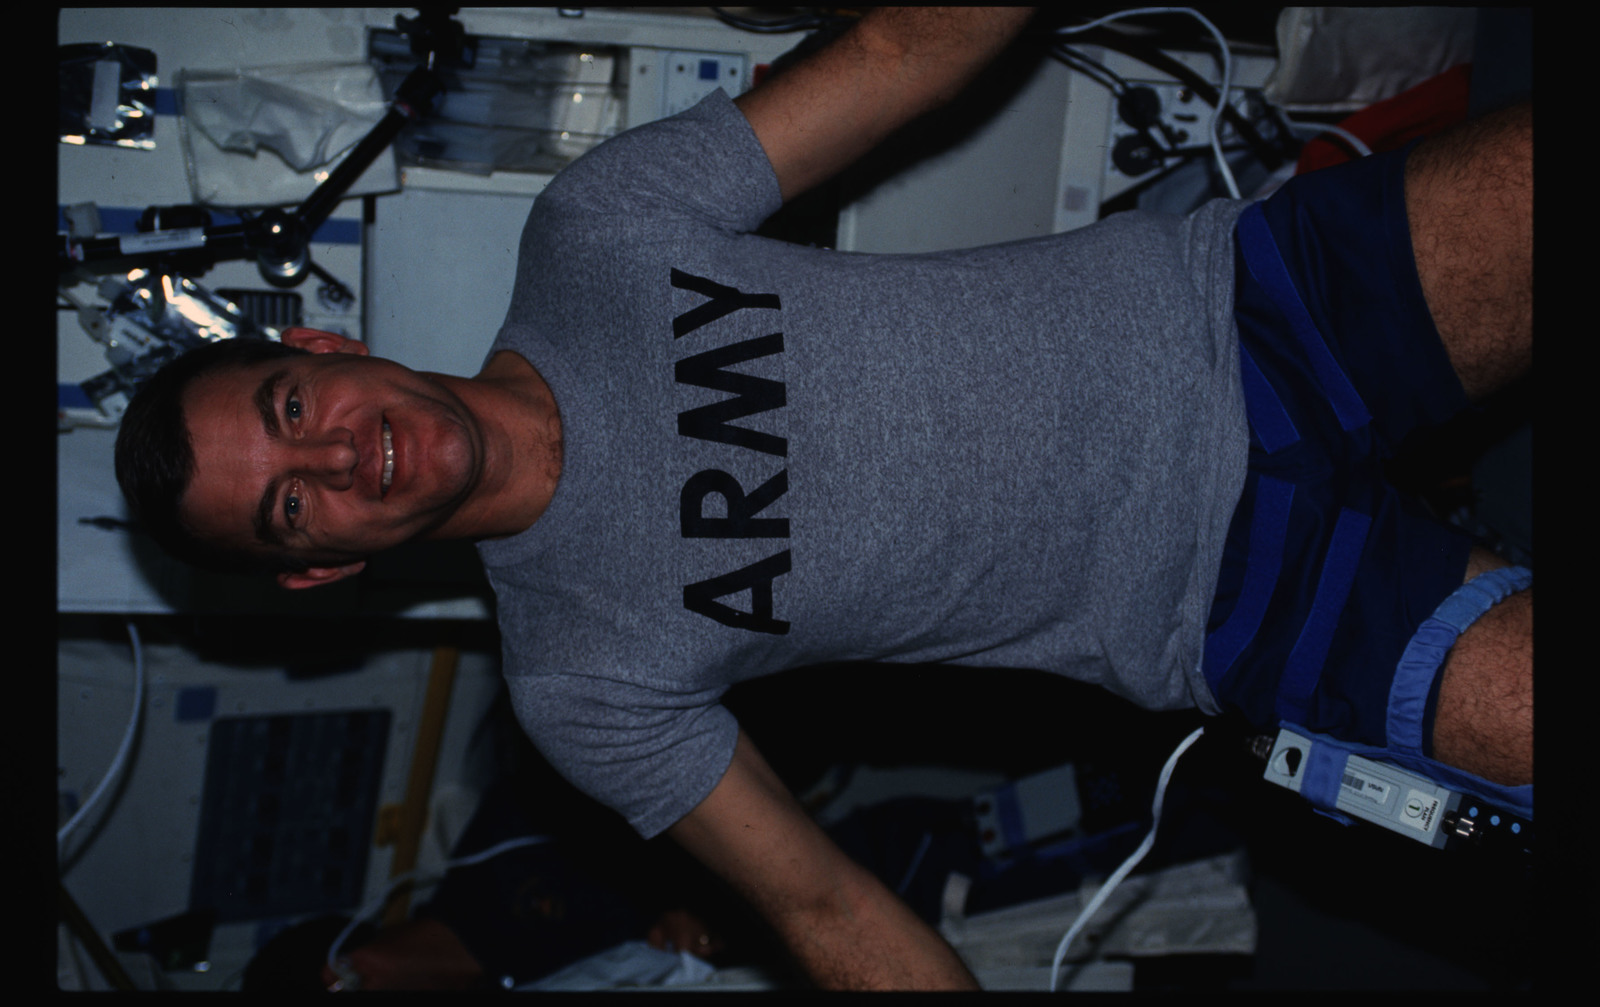 STS044-19-005 - STS-044 - STS-44 Mission Specialist (MS) Voss poses for a photo on OV-104's middeck